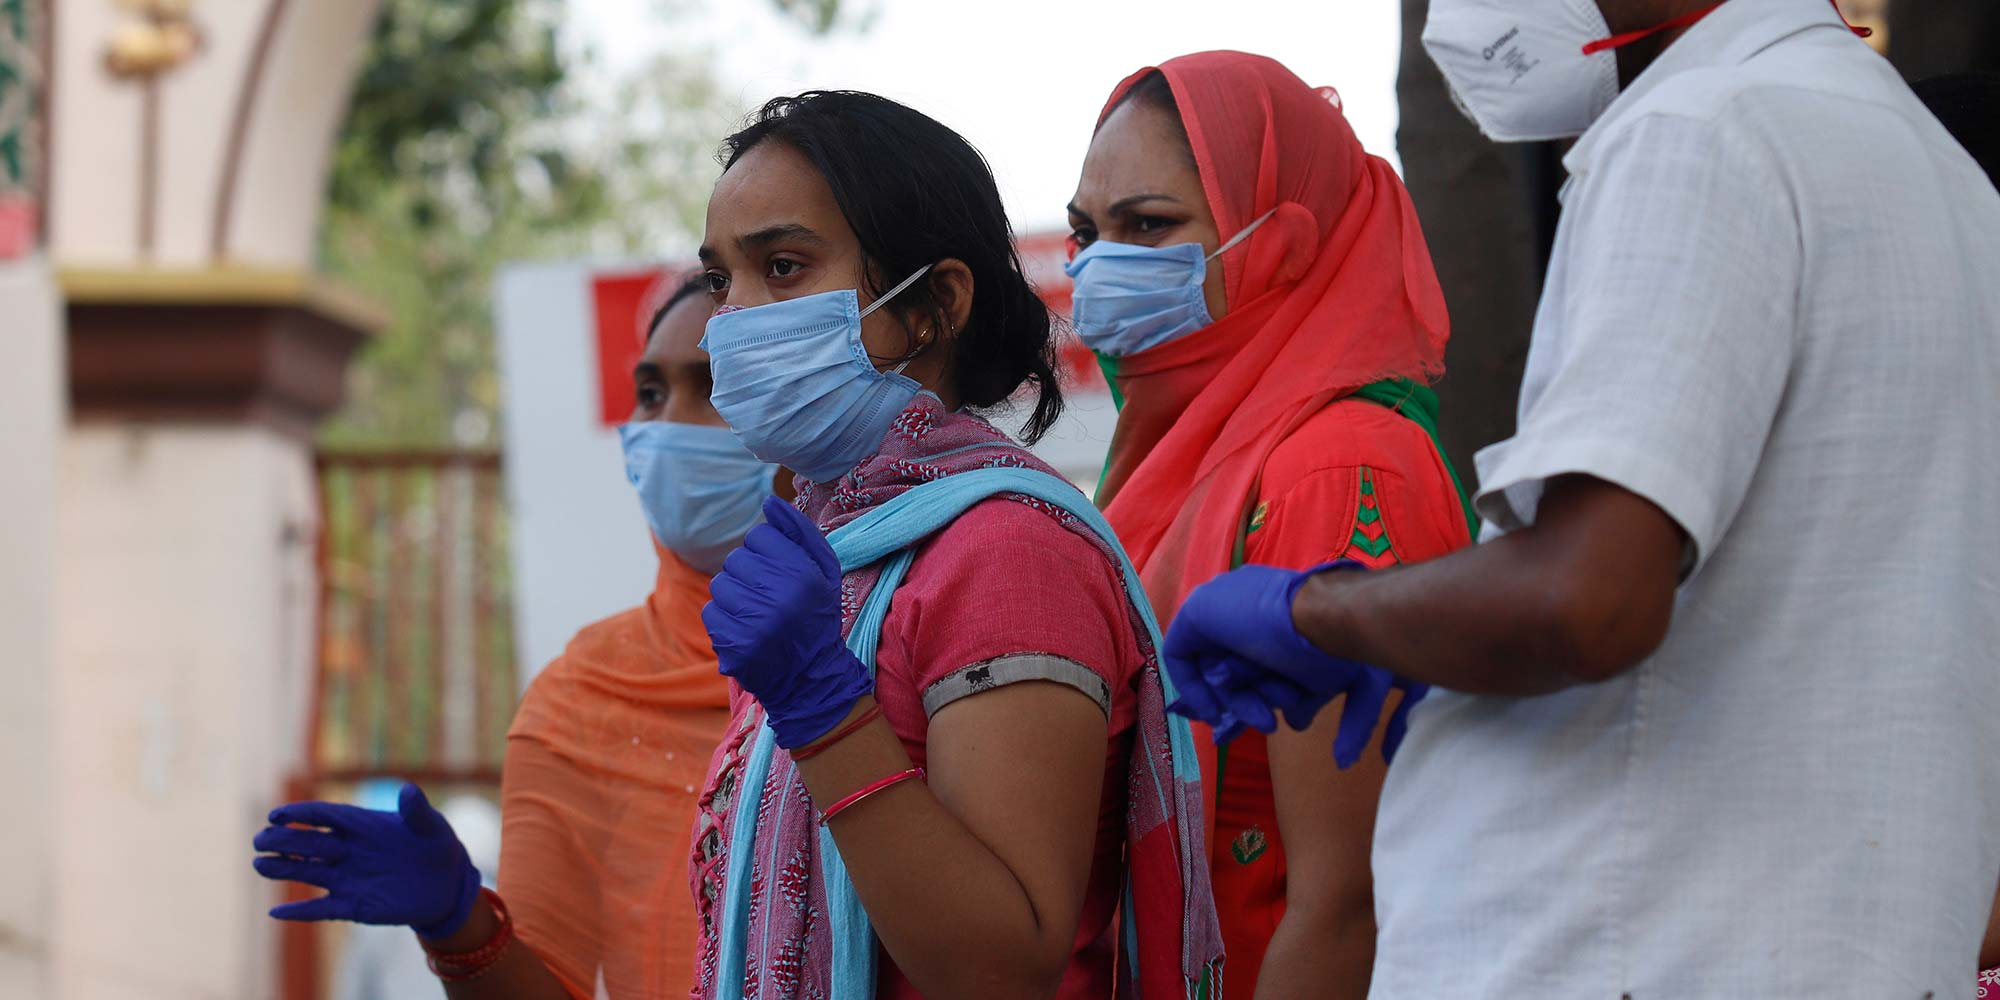 Indian health workers wearing personal protective equipment (PPE) and relatives carrying the mortal remains of a COVID-19 victim at the cremation ground.